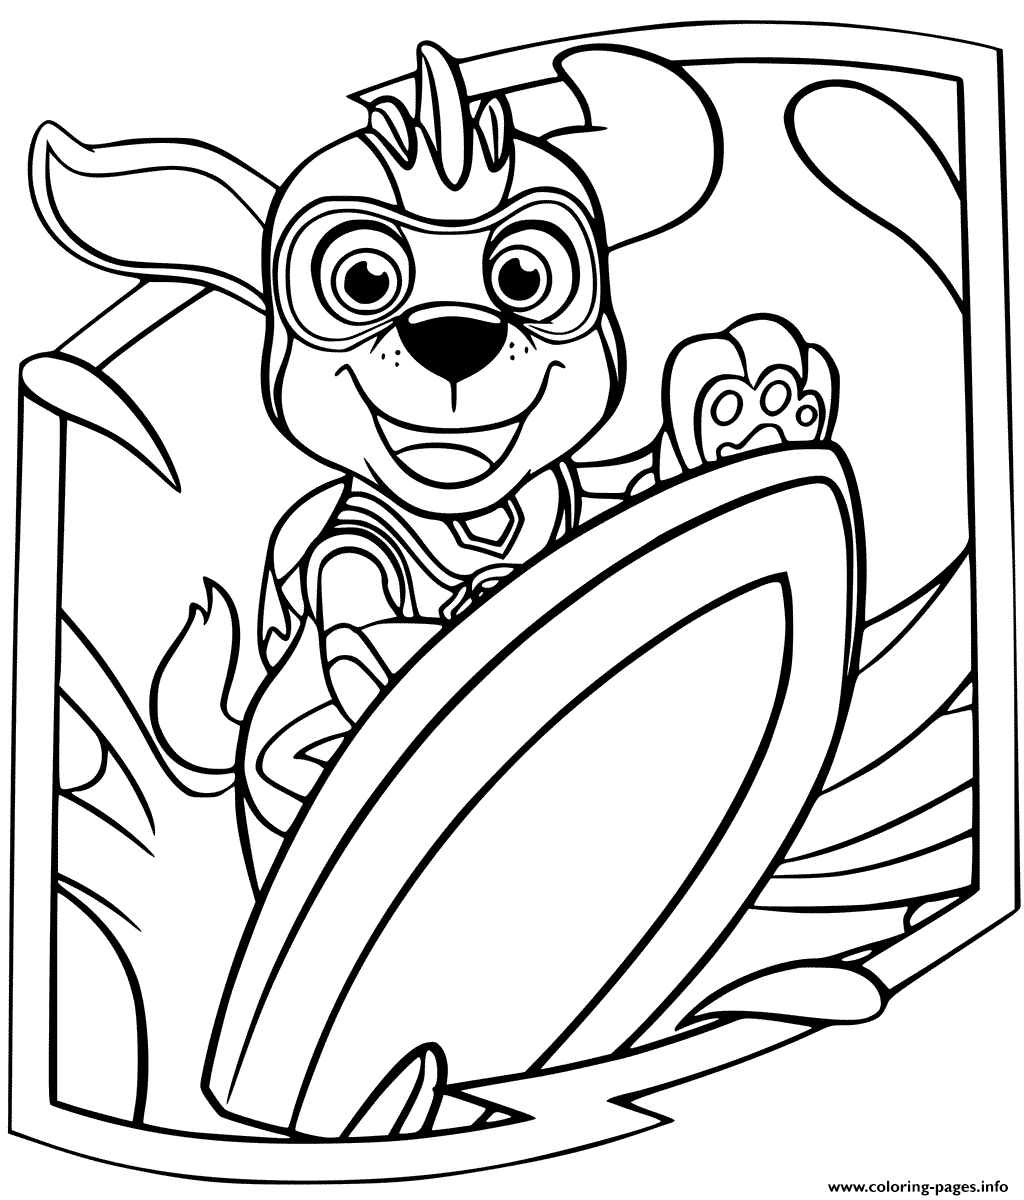 Zuma Mighty Pups Coloring Pages Printable